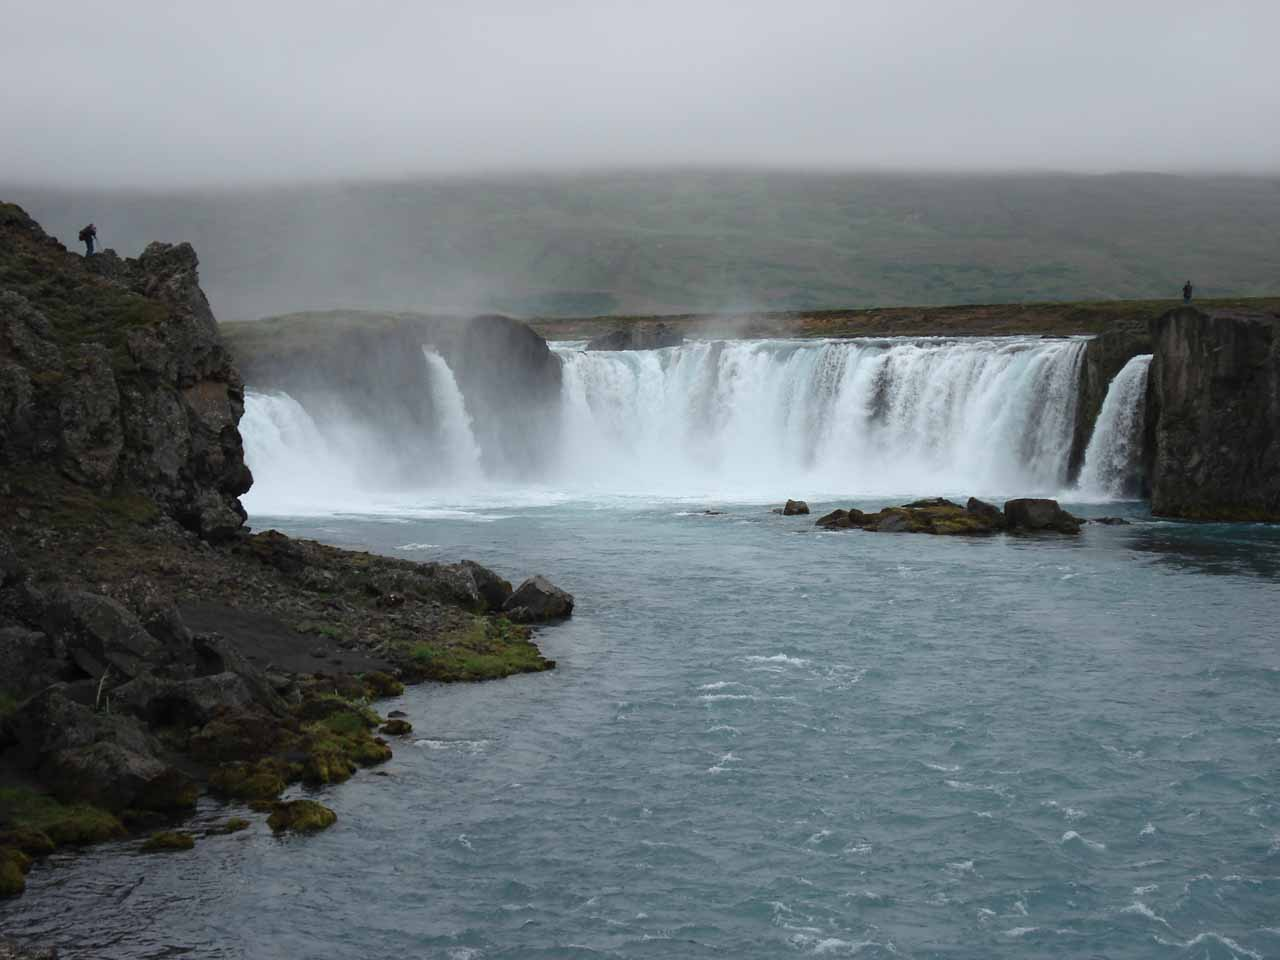 Approaching Goðafoss with some people standing on atop each bank of the river giving us ideas on where we ought to check out the falls